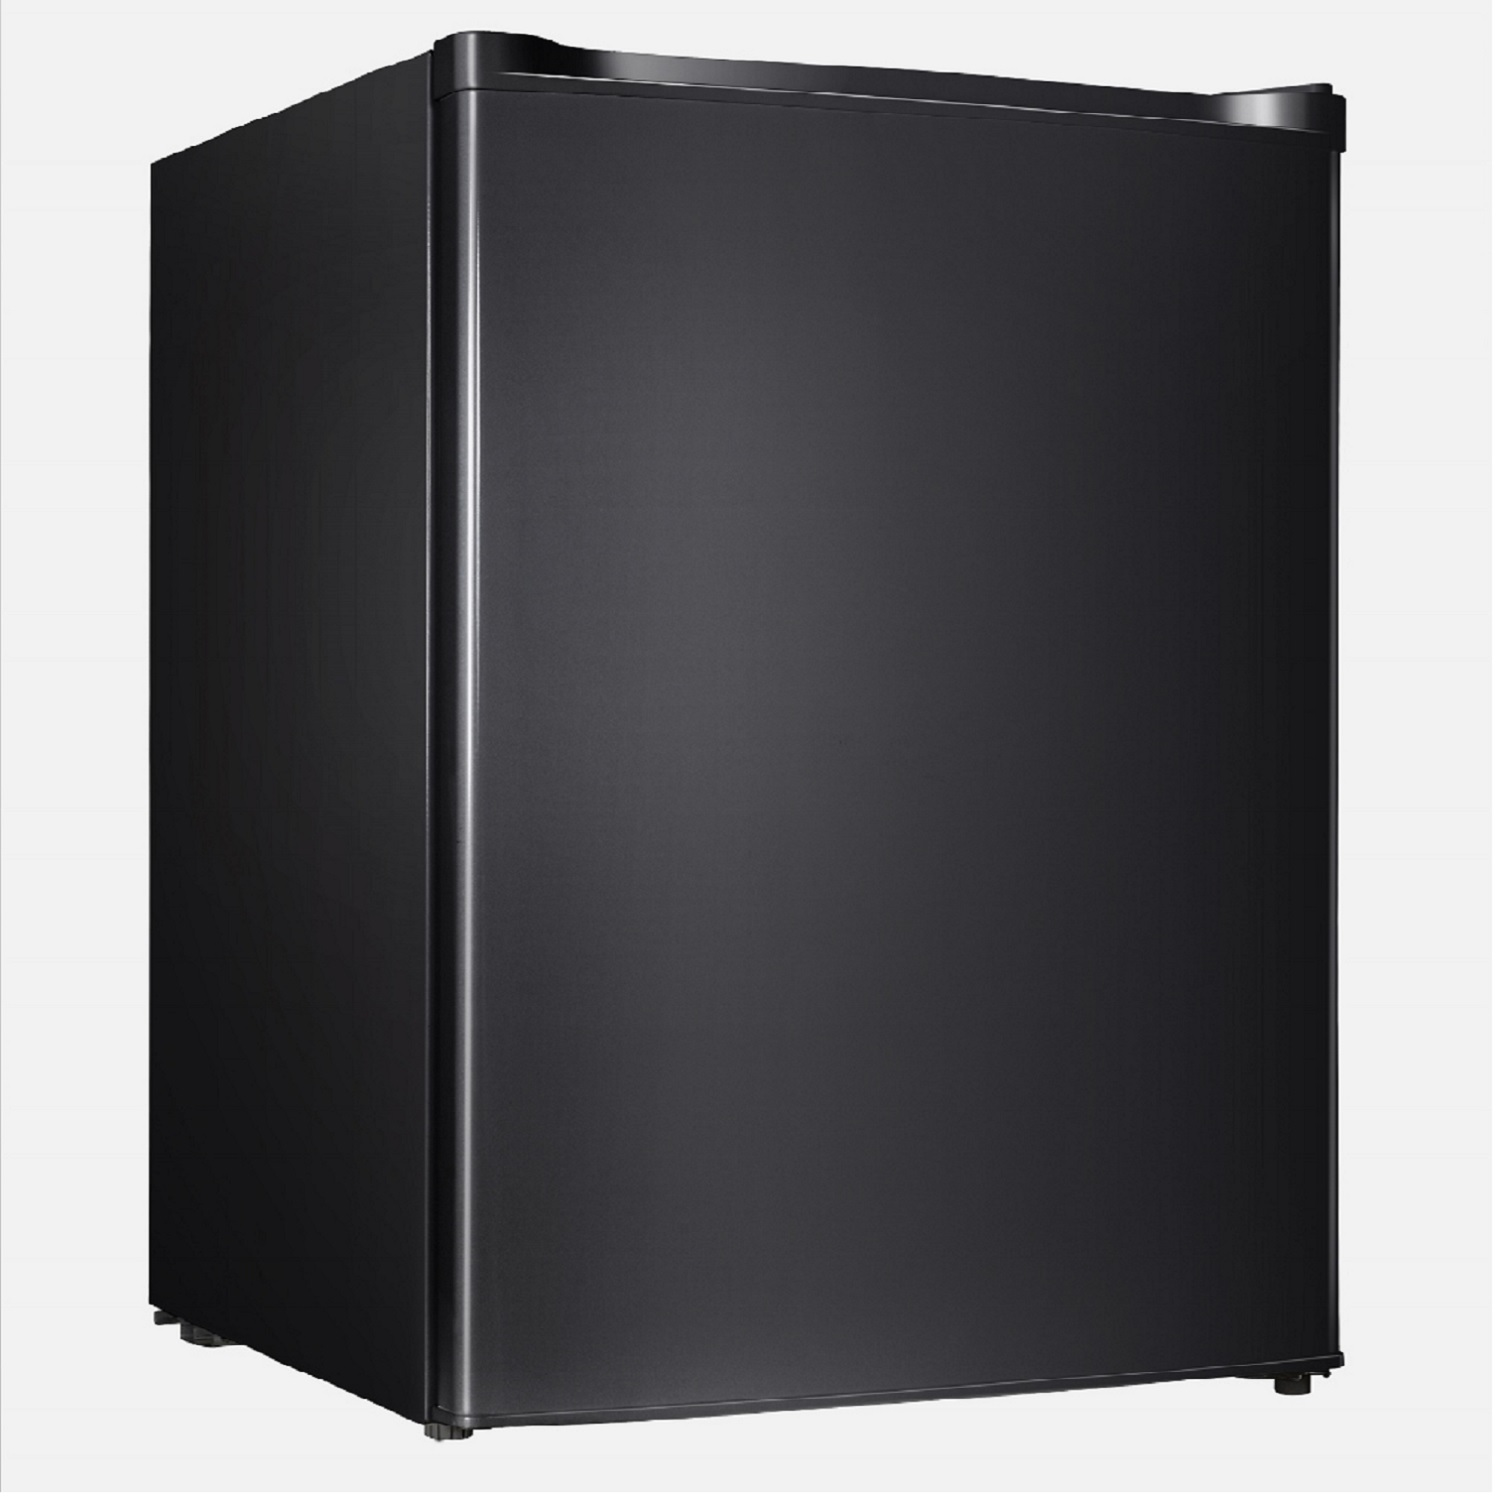 Equator Midea 3.0 cu.ft <br> Defrost Upright Freezer Black